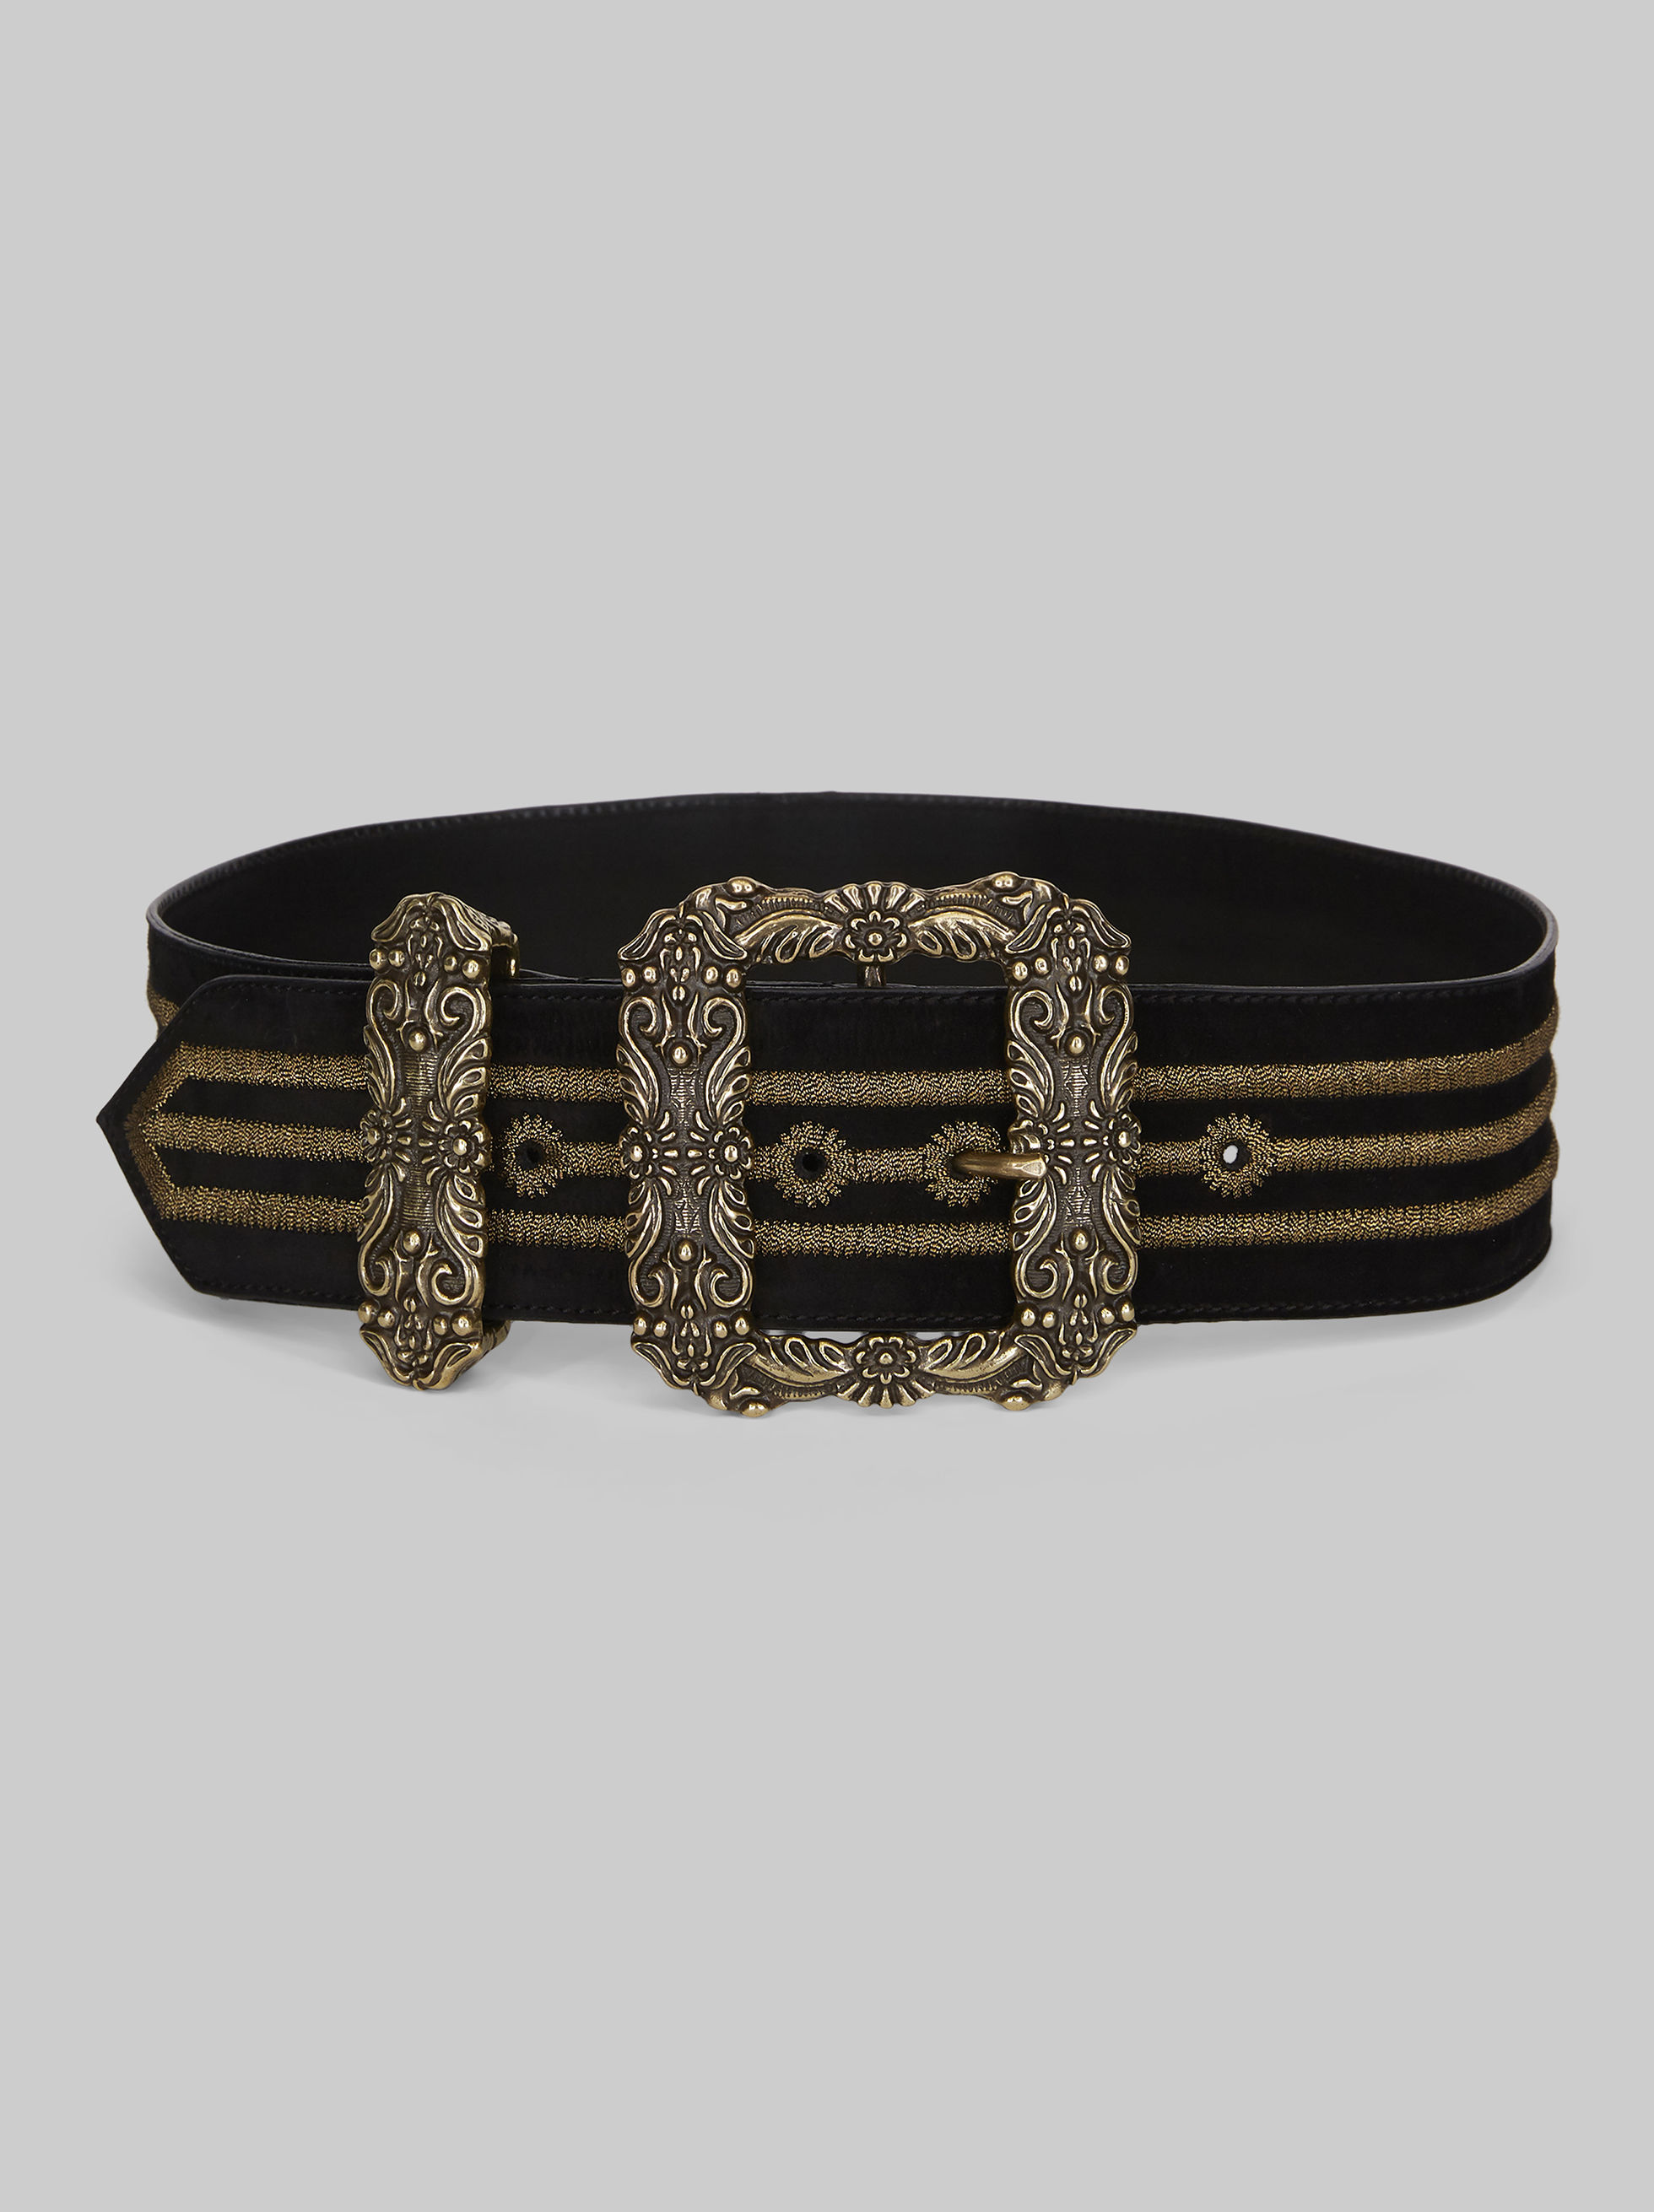 LEATHER BELT WITH EMBROIDERY AND JEWELLED BUCKLE